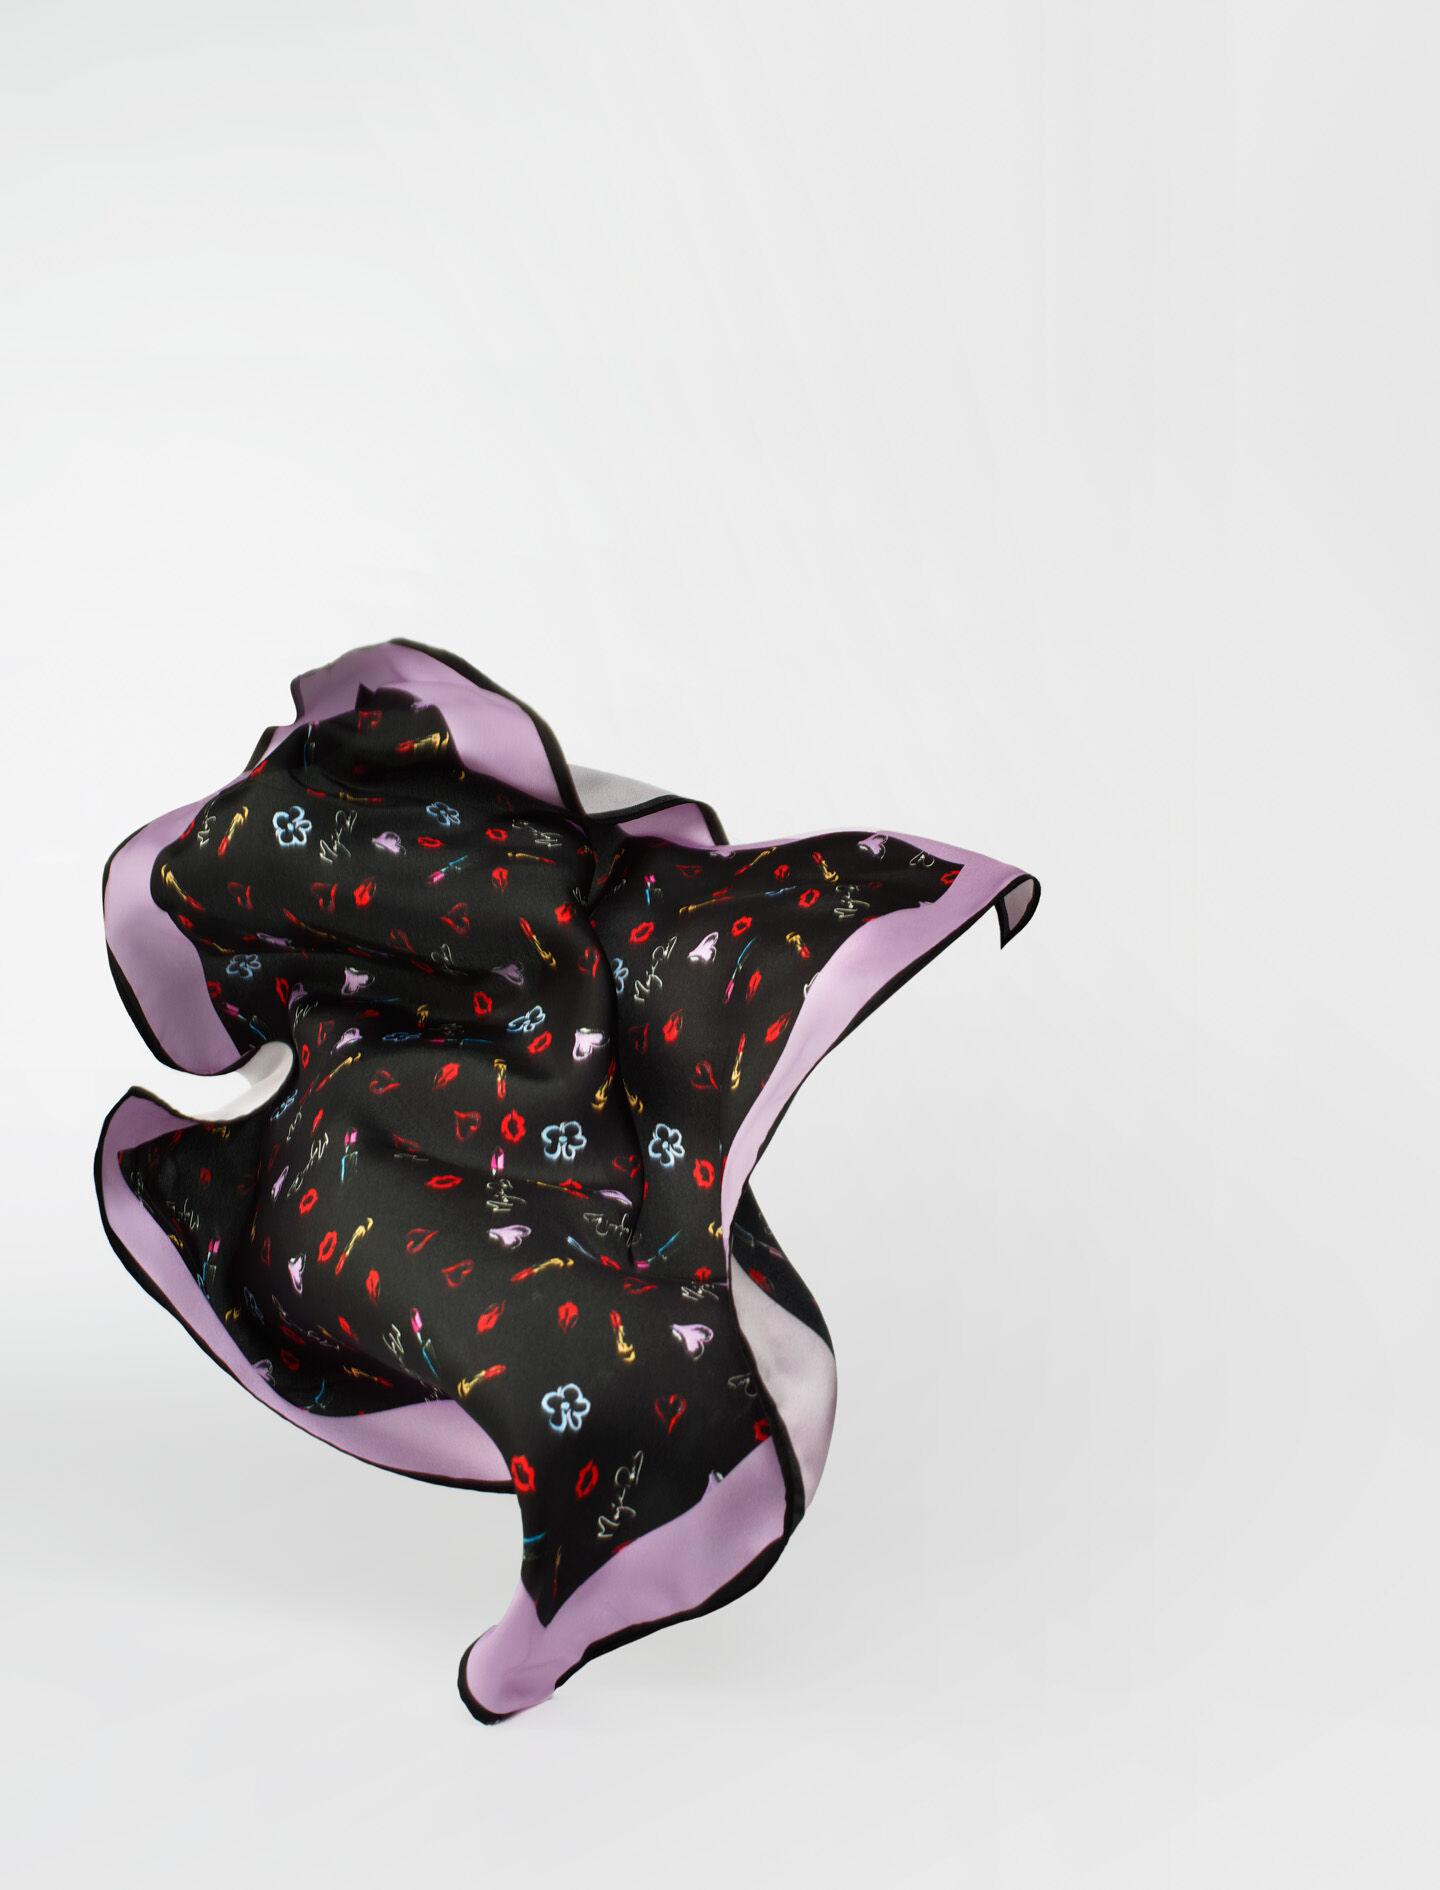 SILK SCARF WITH HEART AND KISSES PRINT